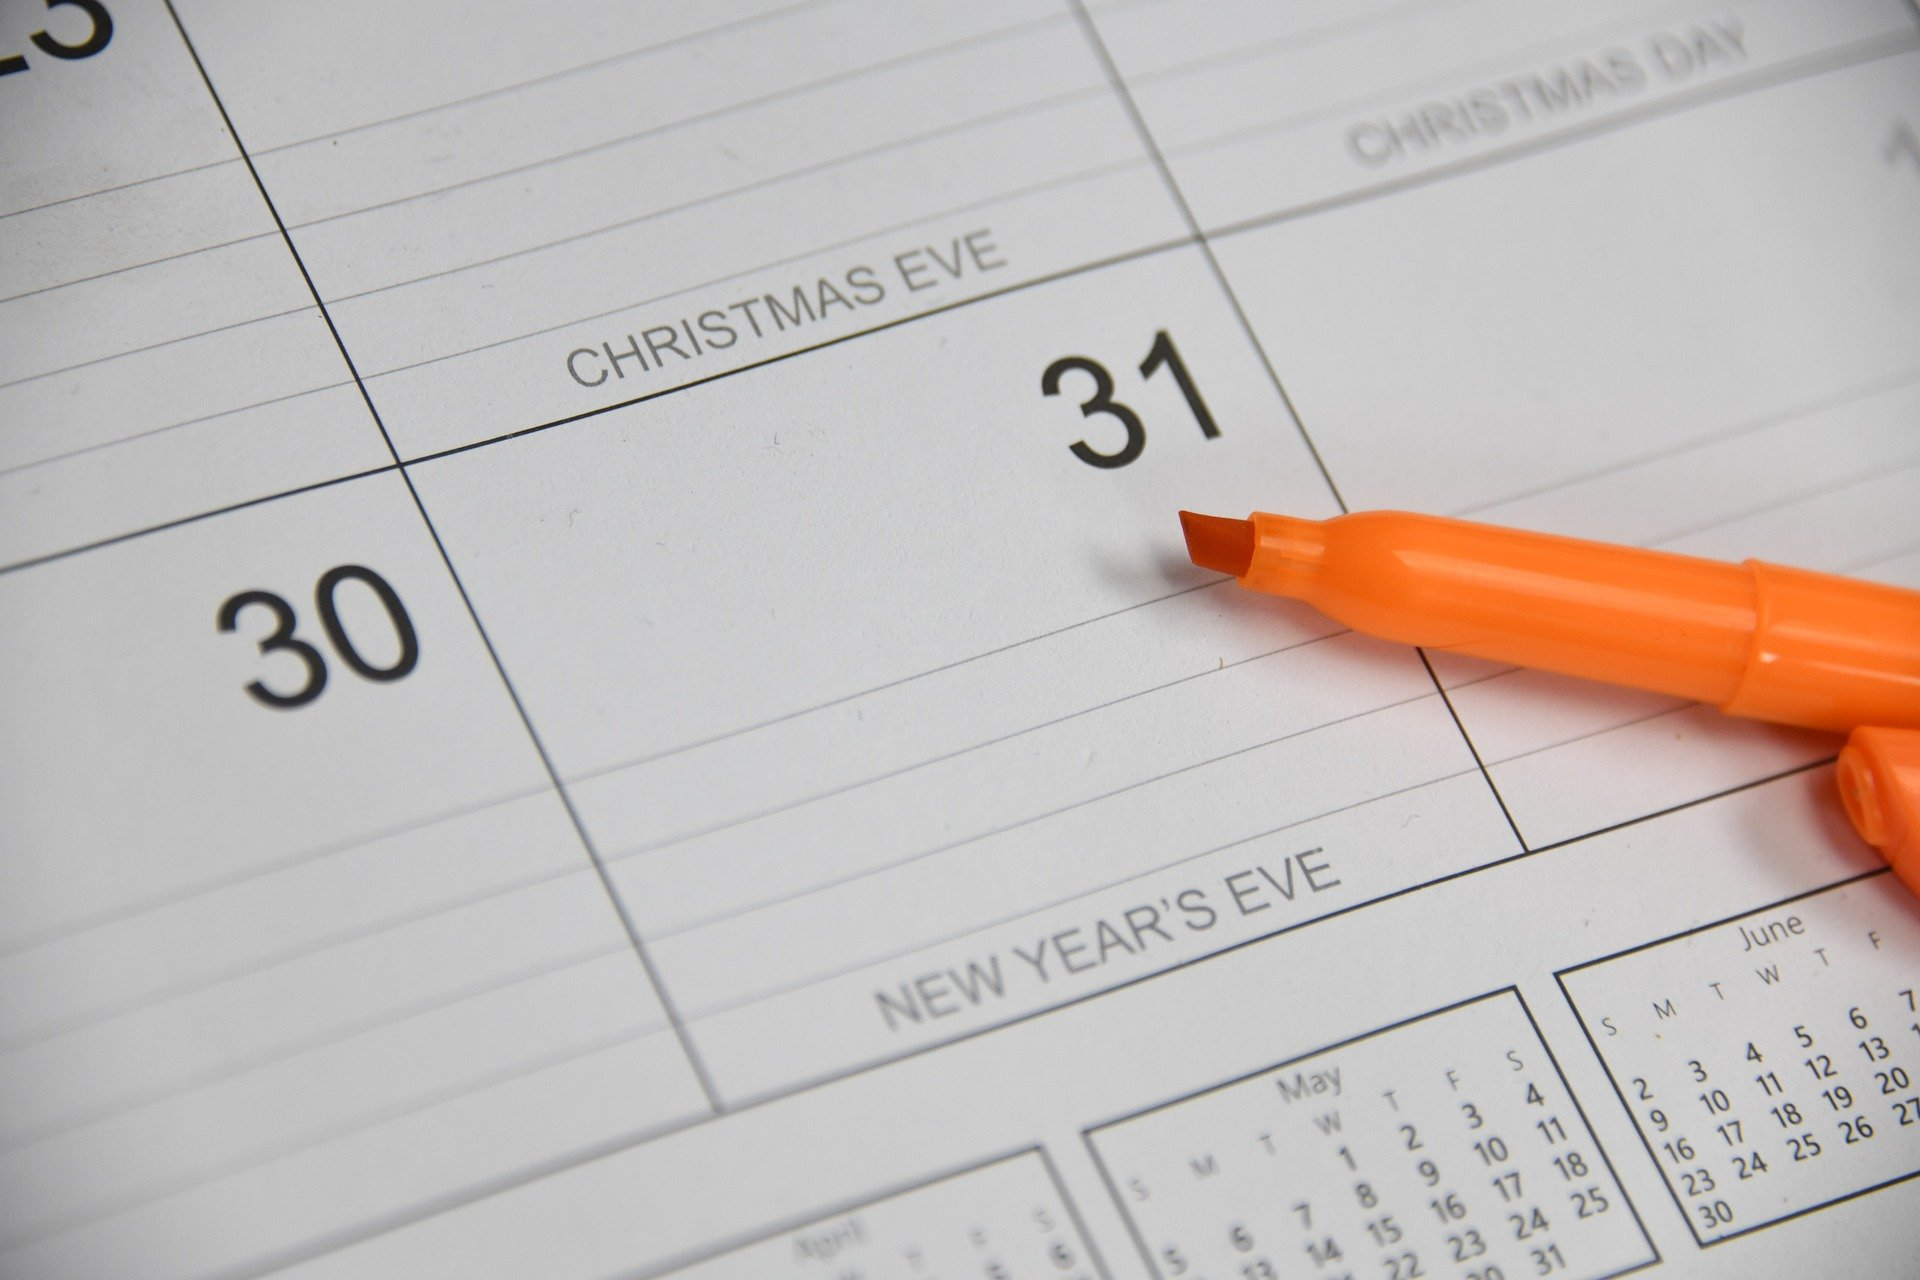 Cleaning Resolutions for the New Year's featured image